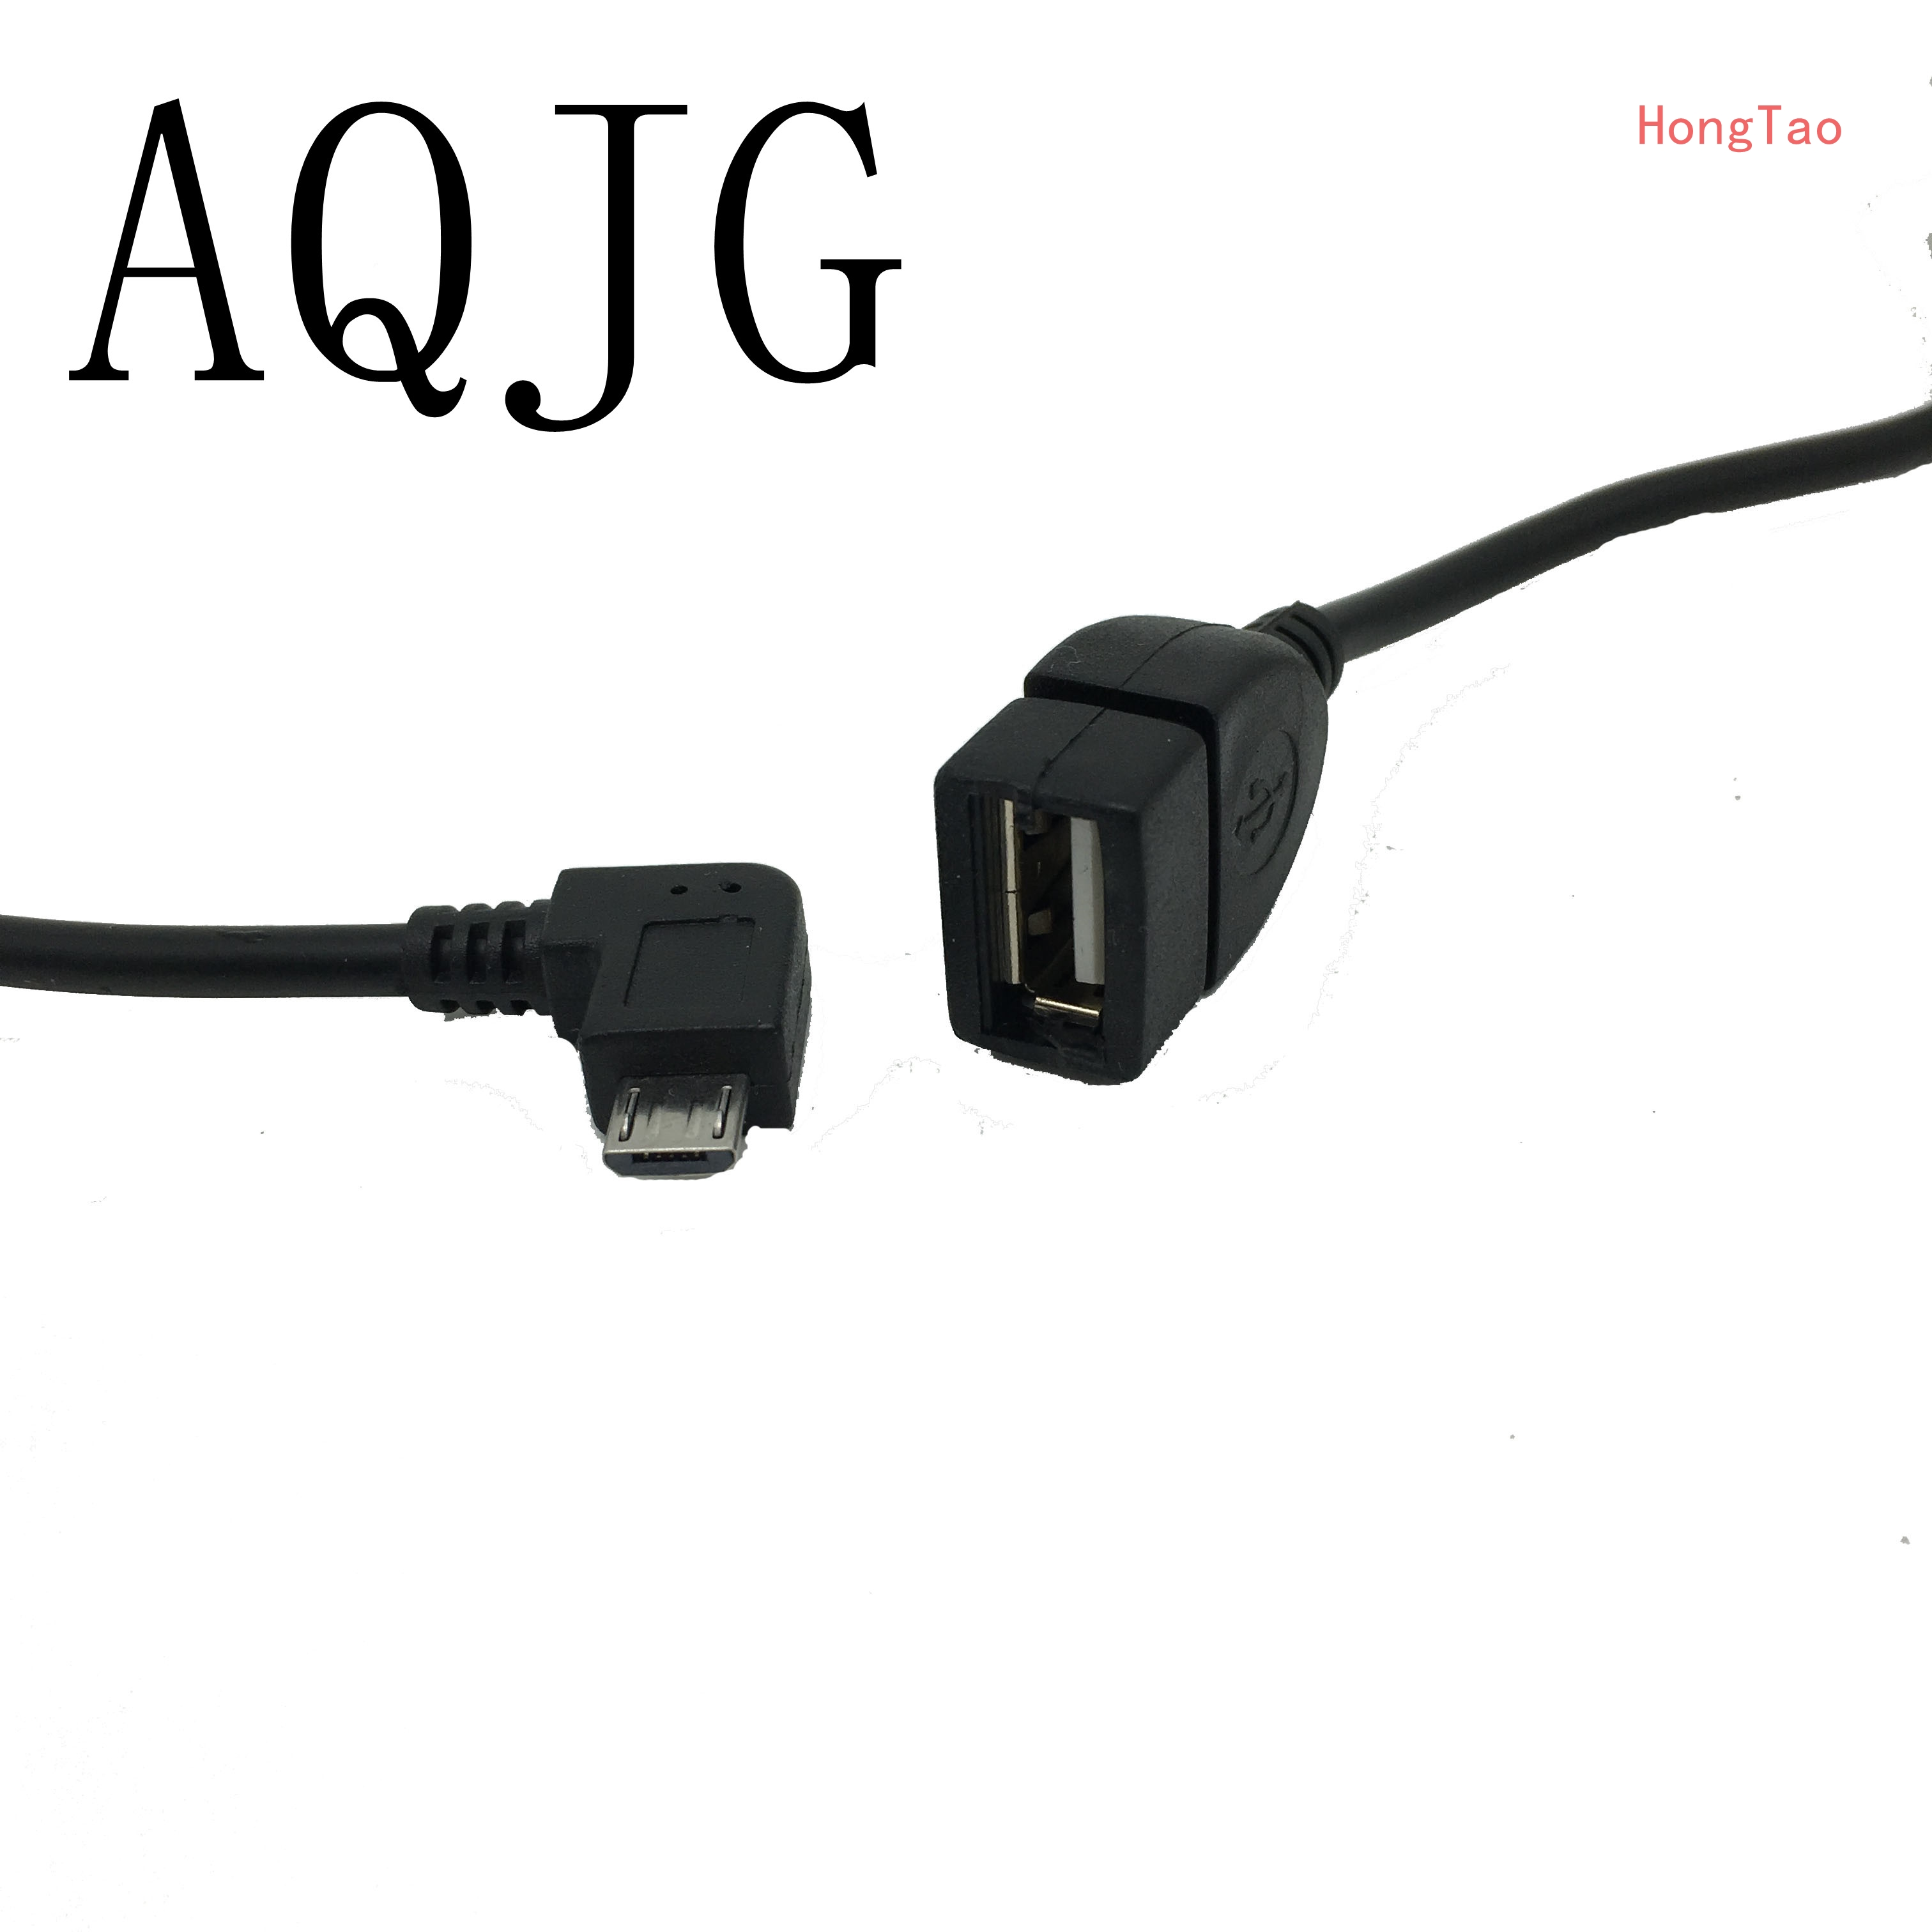 90 Degree Angled OTG Cable USB 2.0 Female to Micro USB Male Data Host for Samsung Galaxy s3 s4 s2 Note 2 HTC etc with micro USB минимойка skil f0150761ra 1400вт